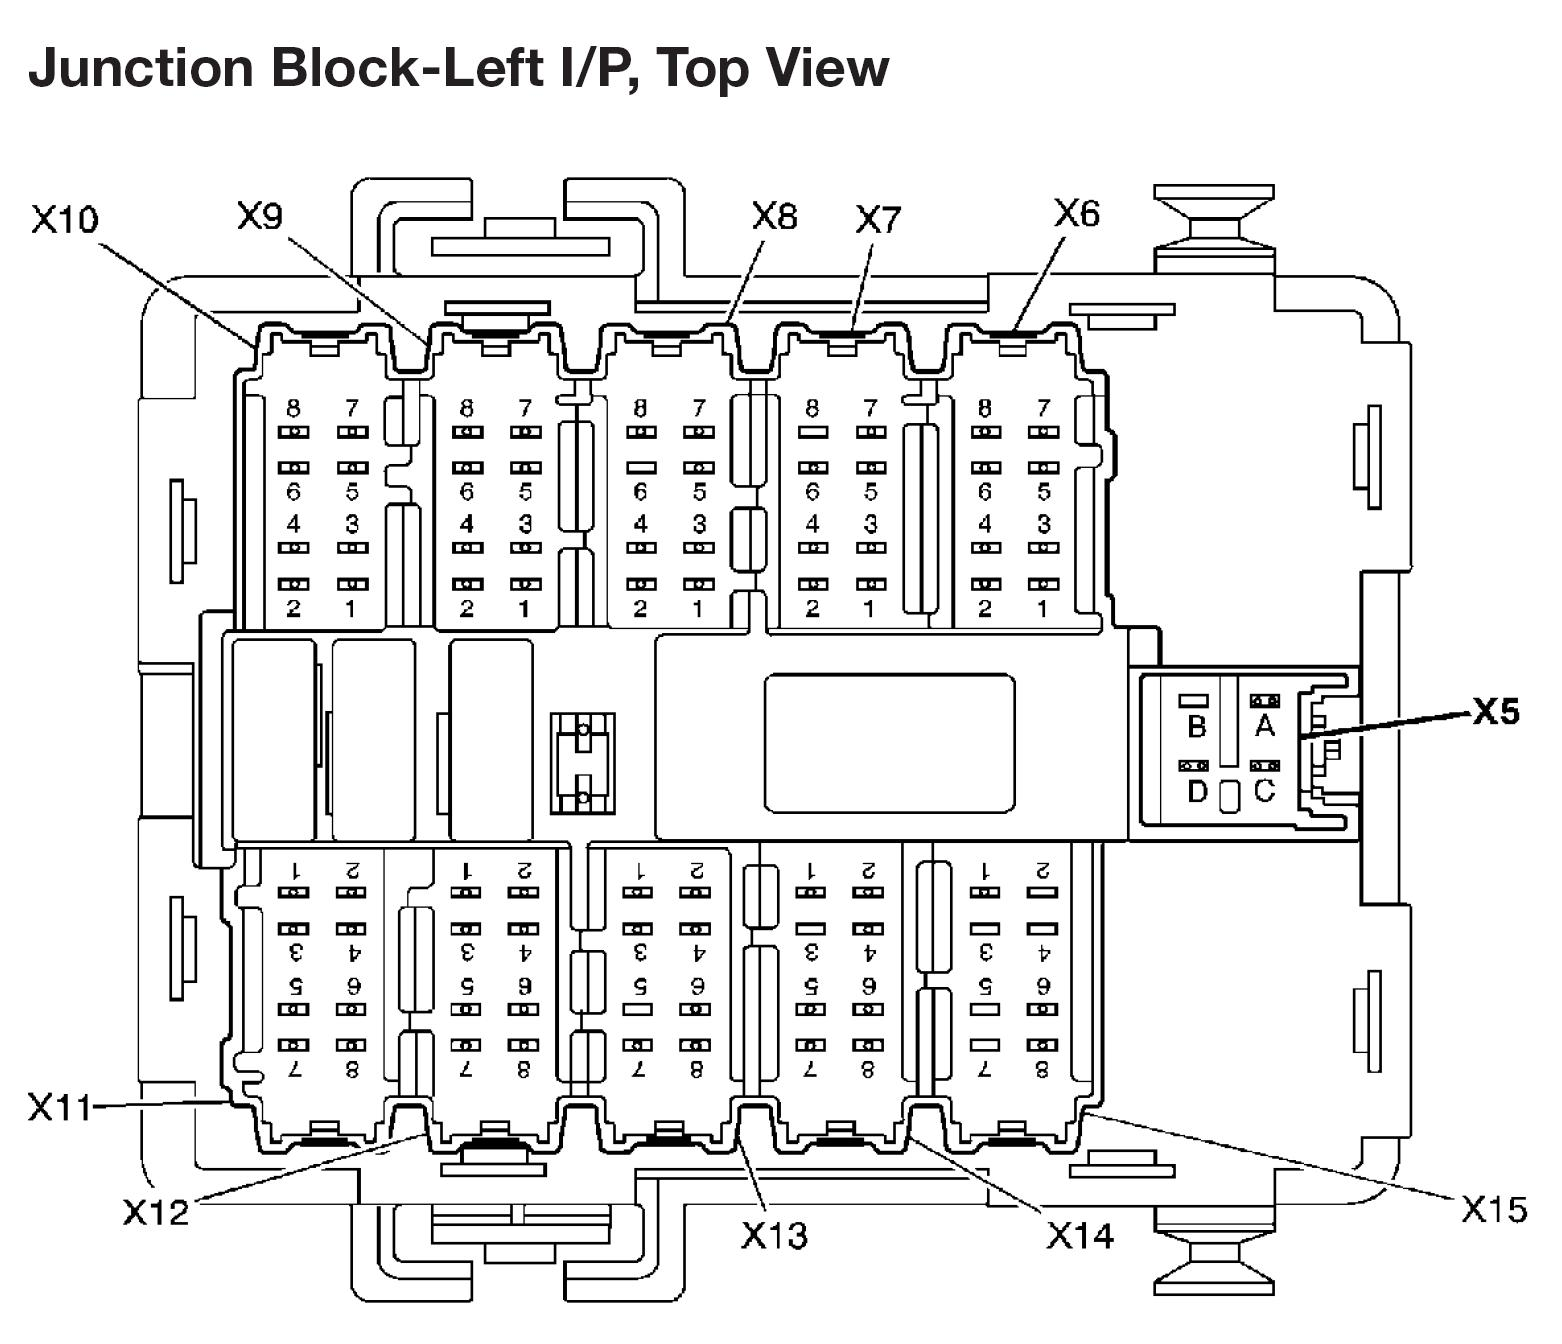 Junction Block Pinout 2003 Avalanche X11 Wiring Diagram Is This For The Thesame I Need To Tap A Acc Wire There That Can Be Used Full Power Not As Switch